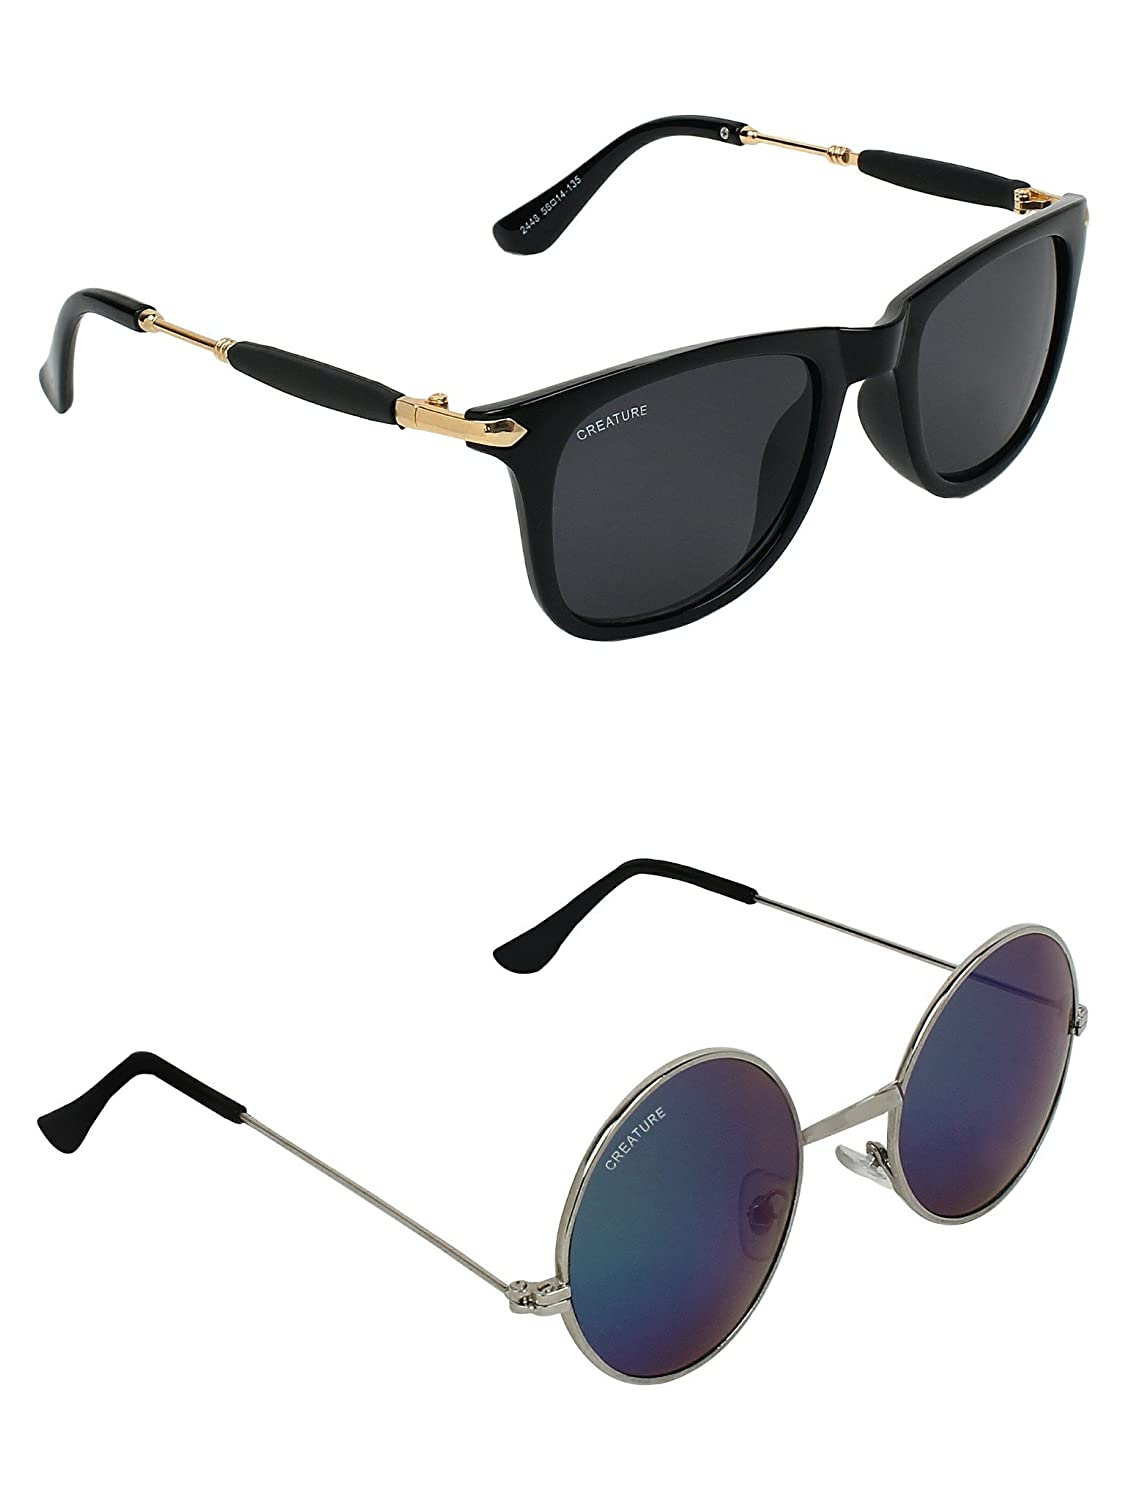 CREATURE | CREATURE Black & Blue Round Sunglasses Combo with UV Protection (Lens-Blue & Blue|Frame-Black & Silver)